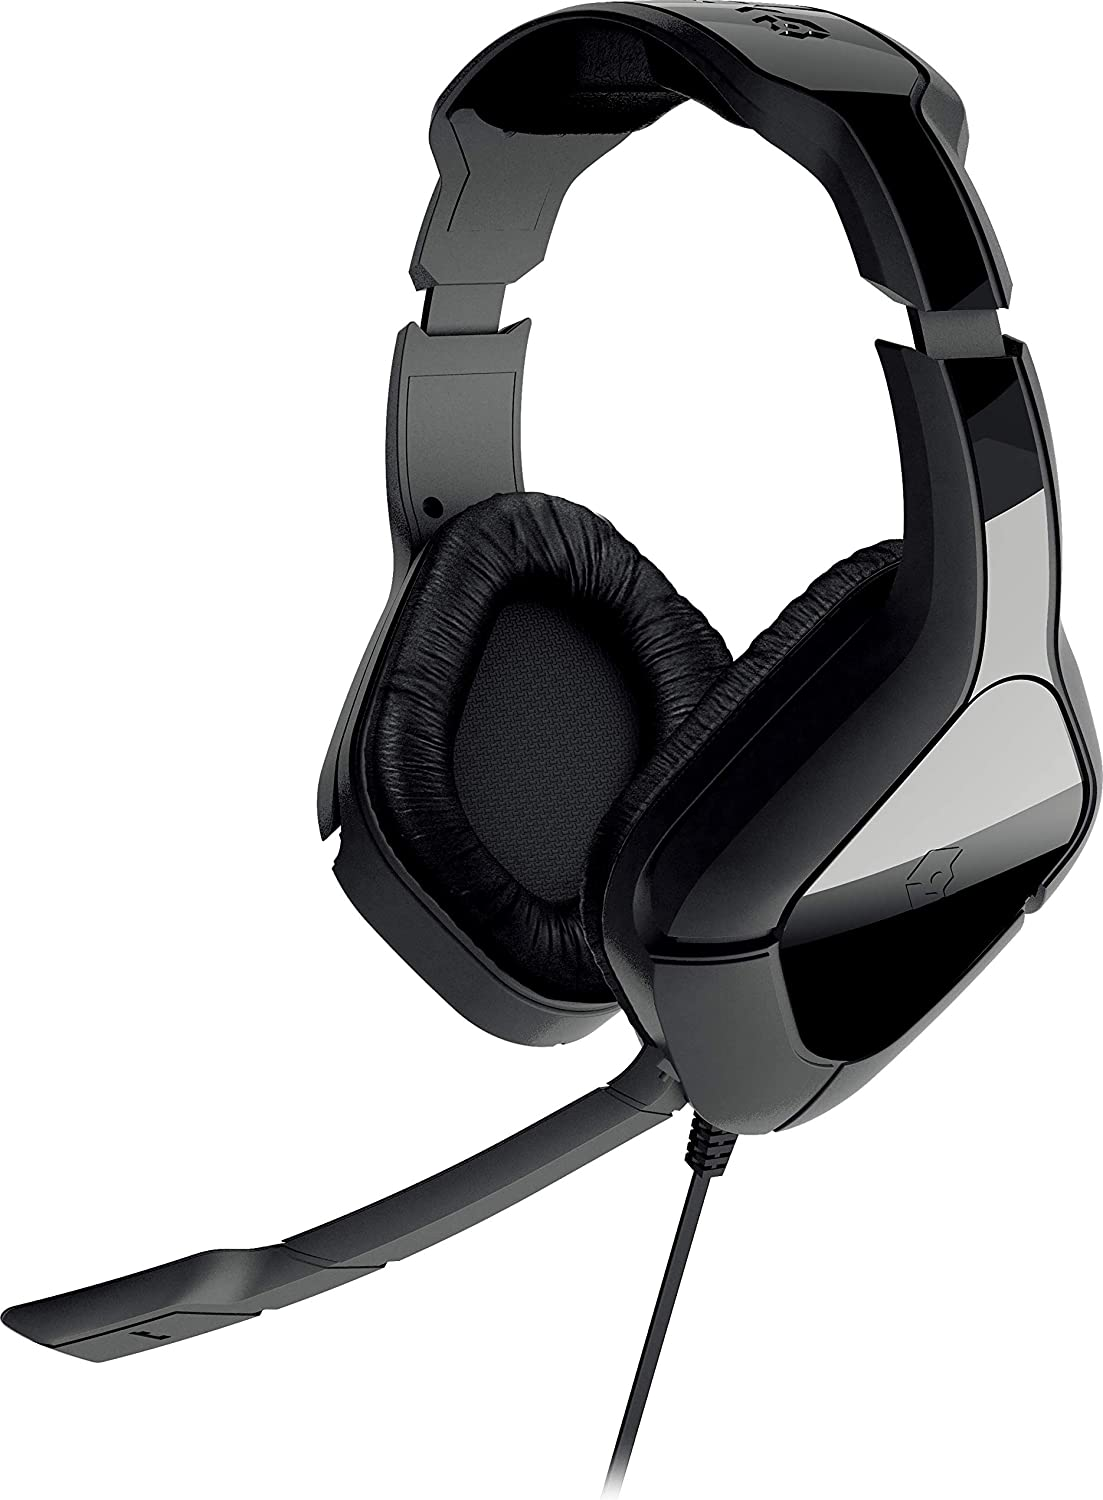 gioteck hc2+ headset ps4